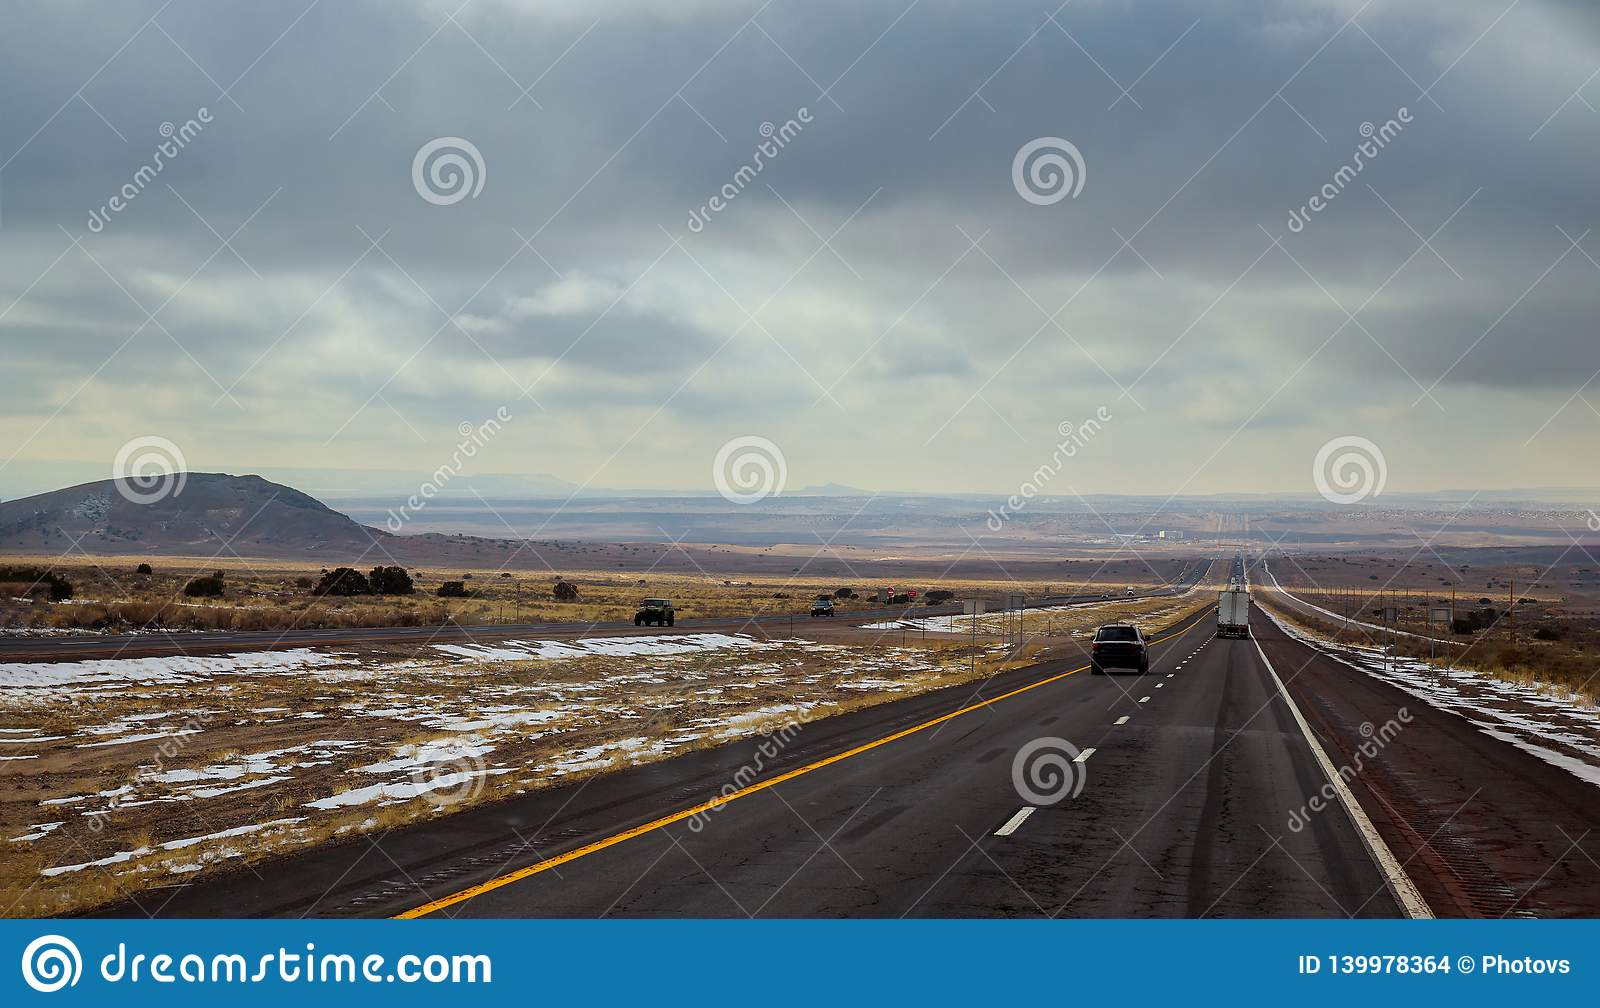 A highway runs from Tucumcari, New Mexico through the brush and mesas of the high desert